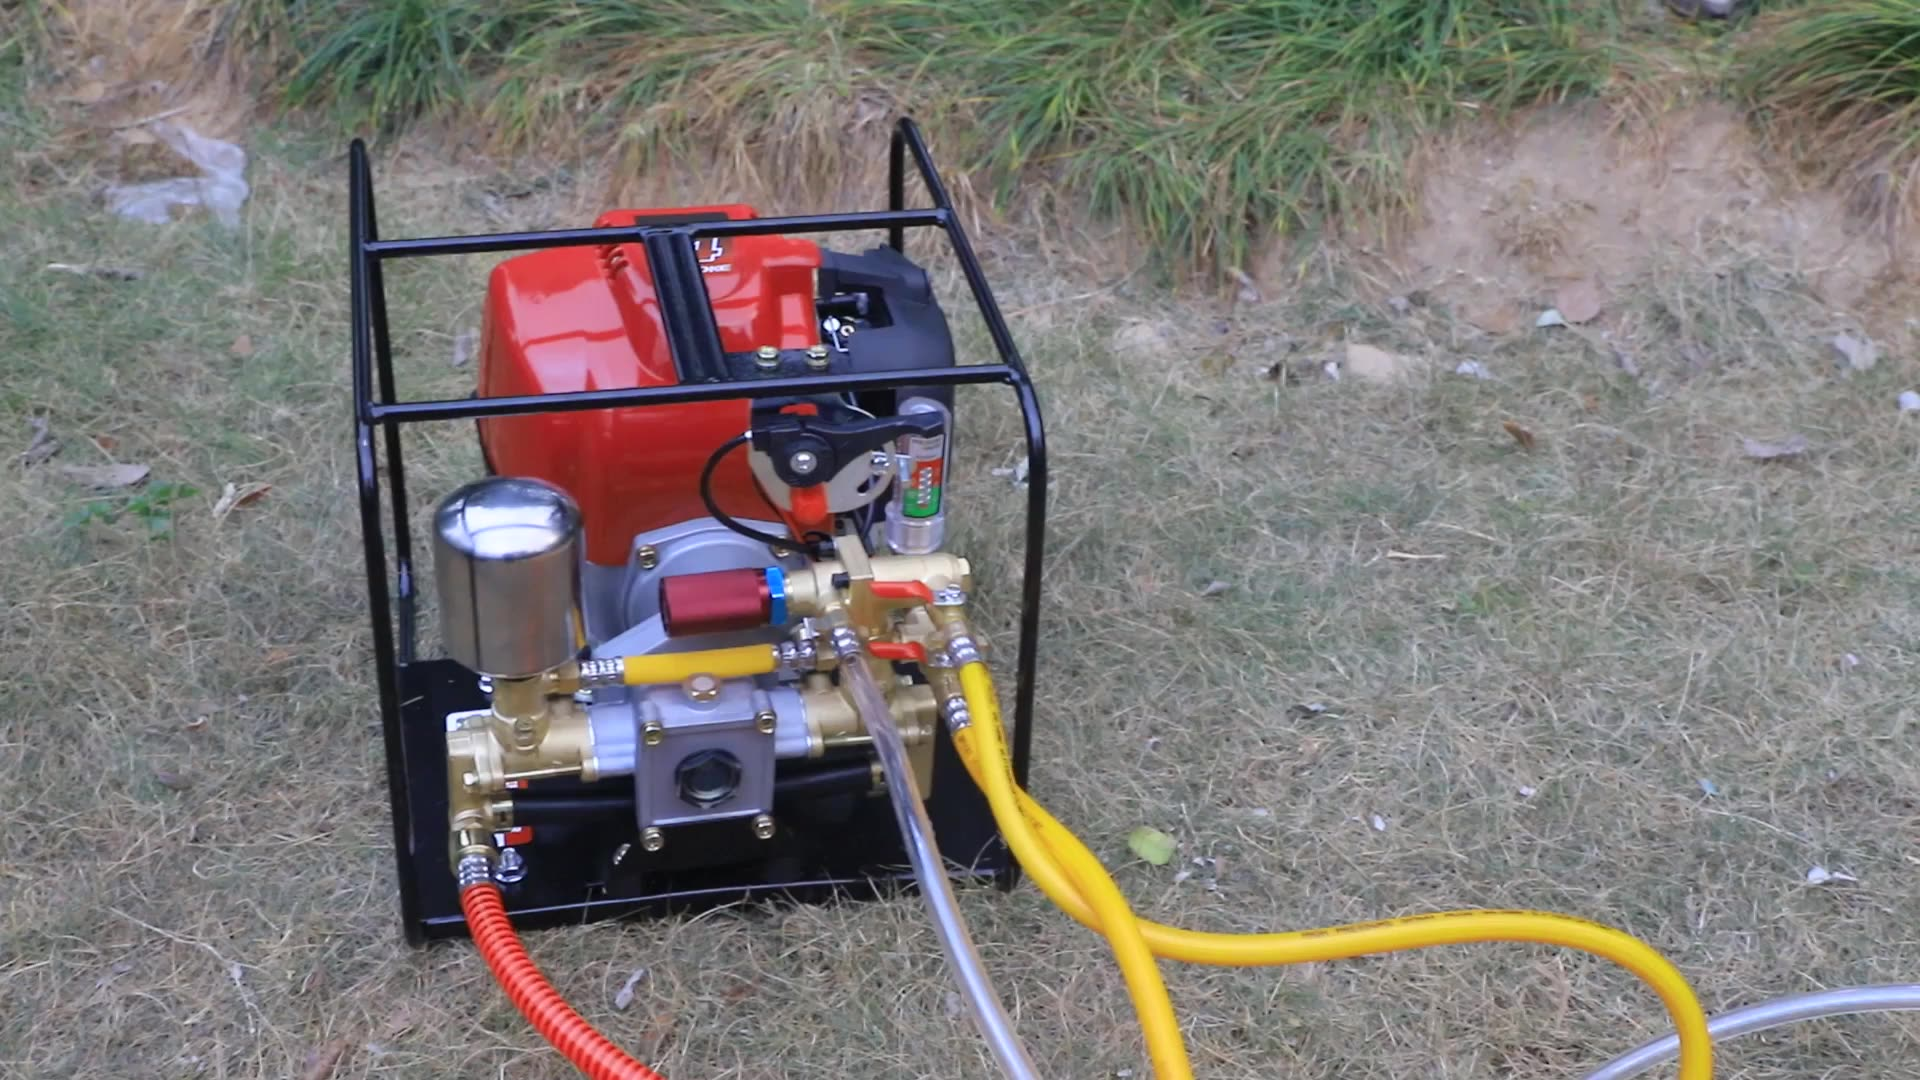 JTPPS35-S China Portable Power Engine Pump Agricultural Frame Power Sprayer